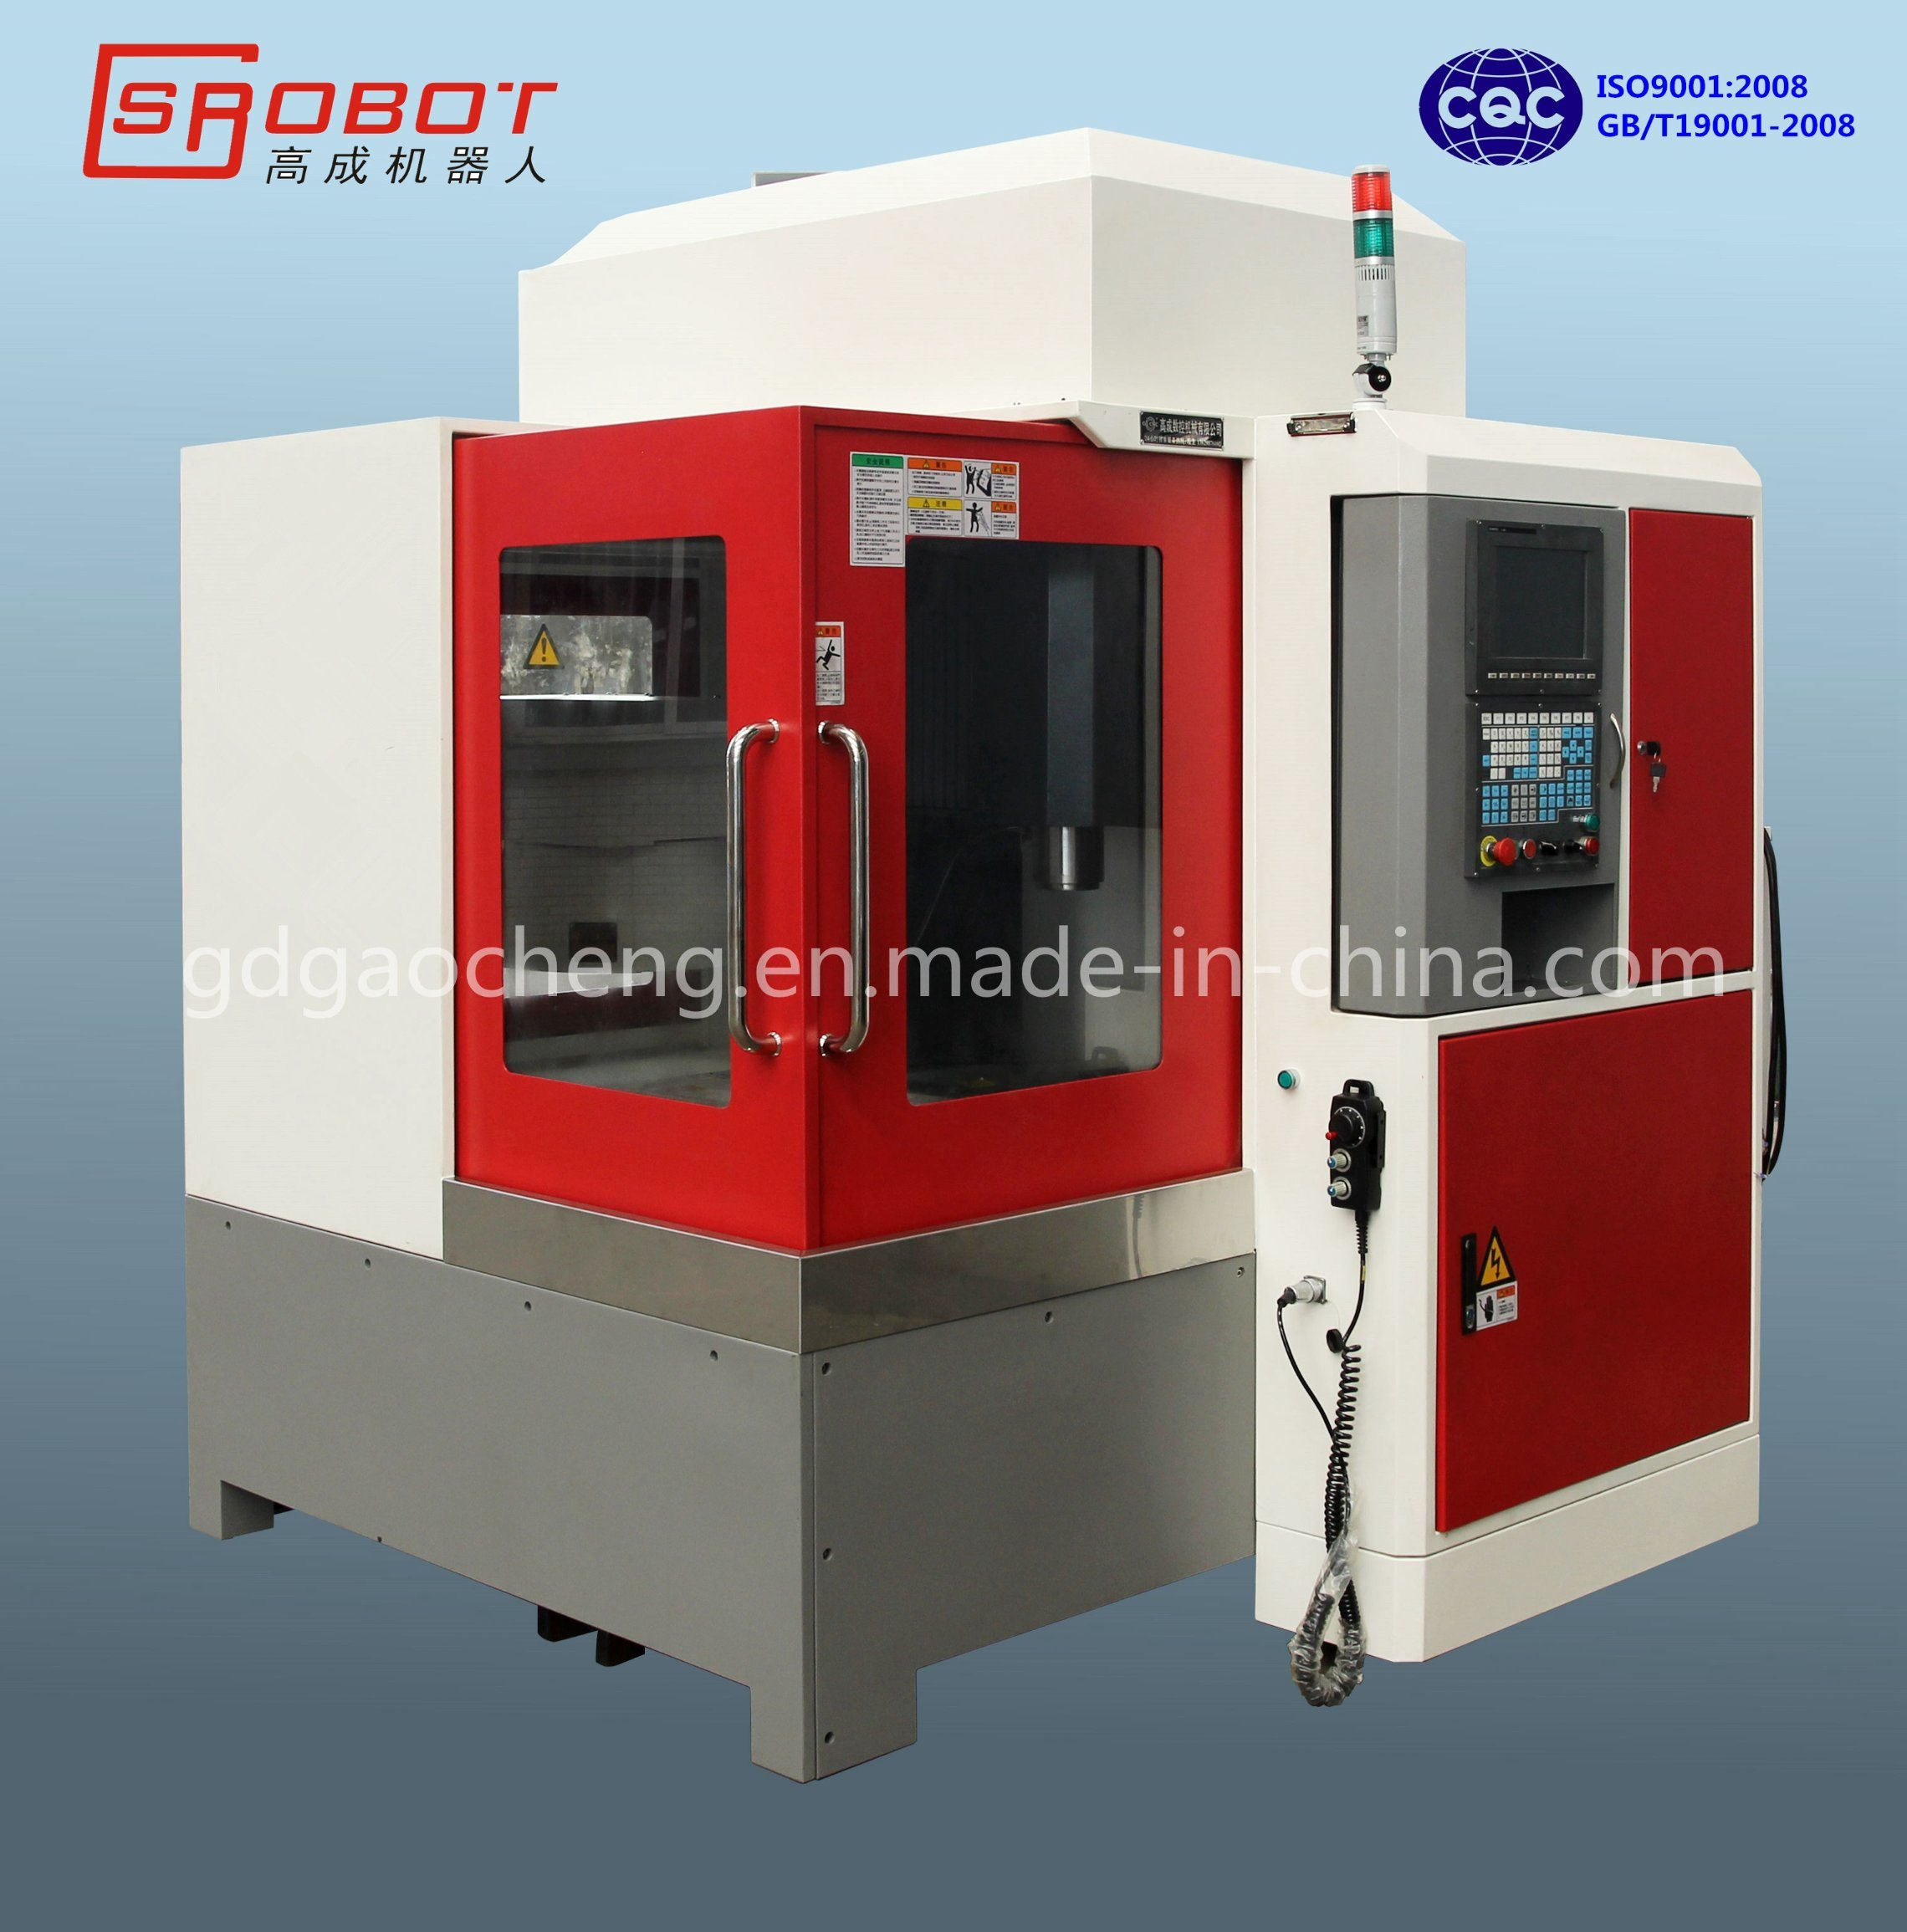 500 X 600mm Most Popular CNC Milling and Engraving Machine GS-E660